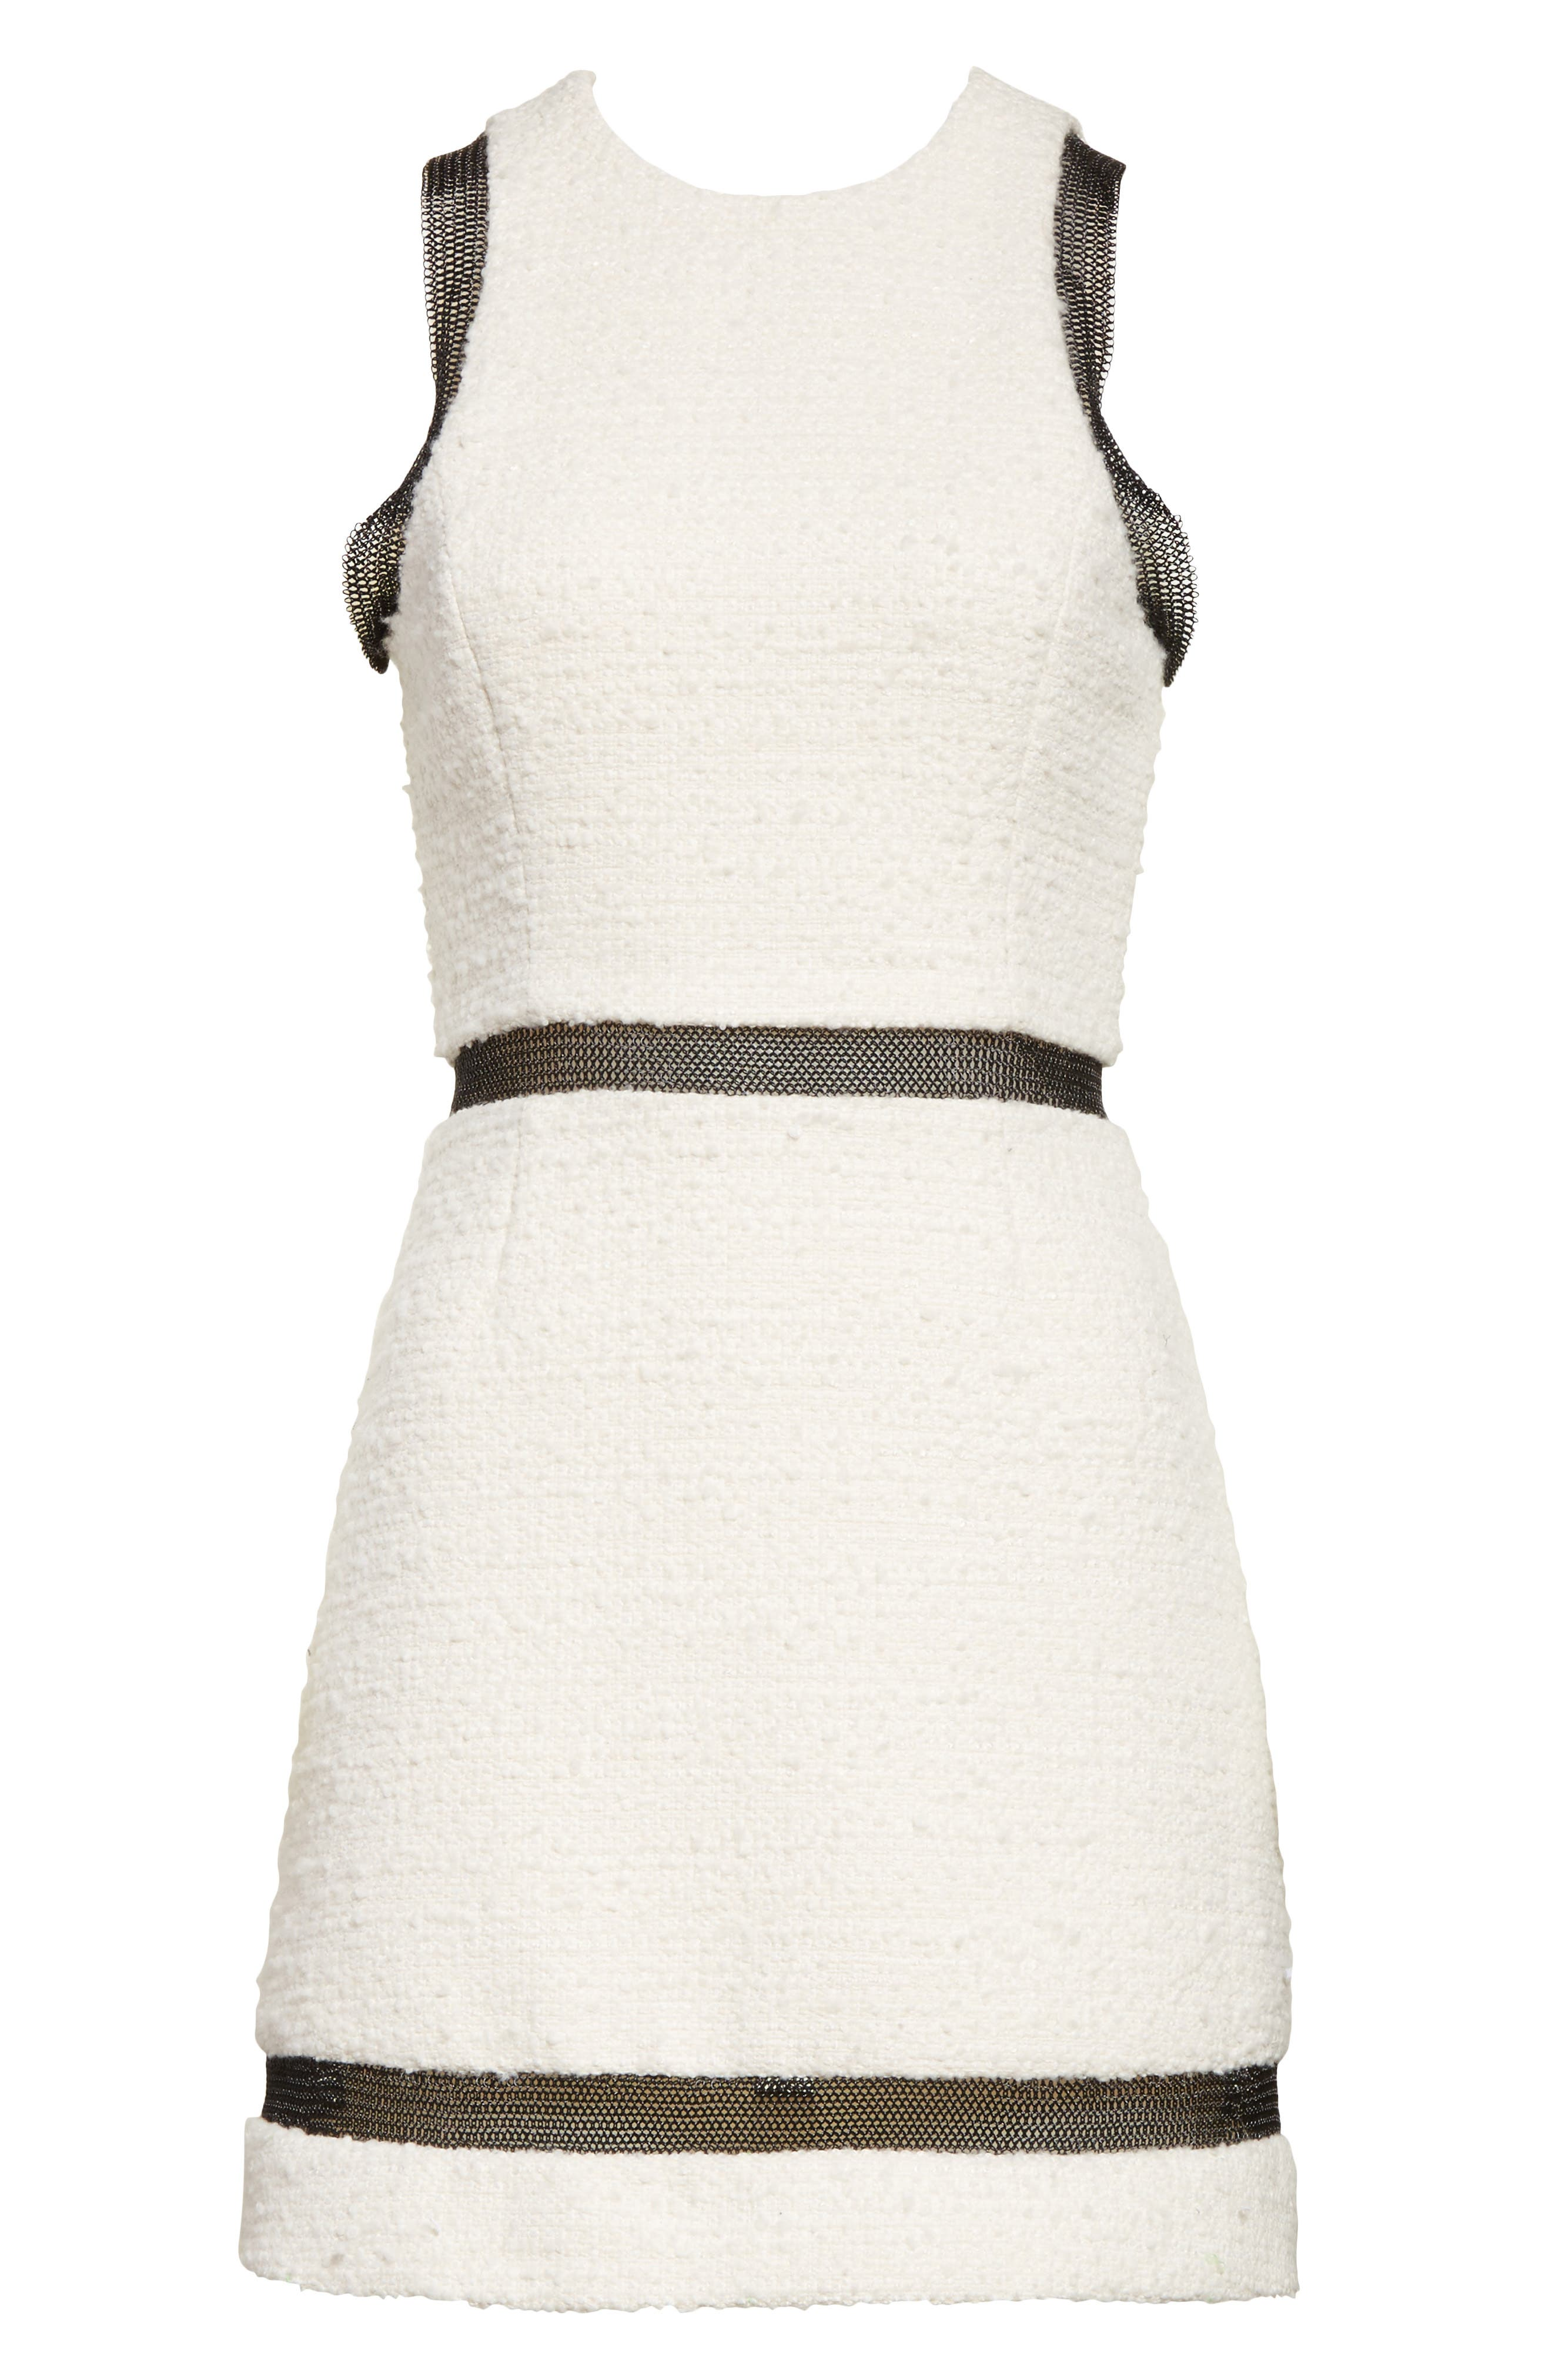 Chain Mail Trim Tweed Dress,                             Alternate thumbnail 7, color,                             Ivory